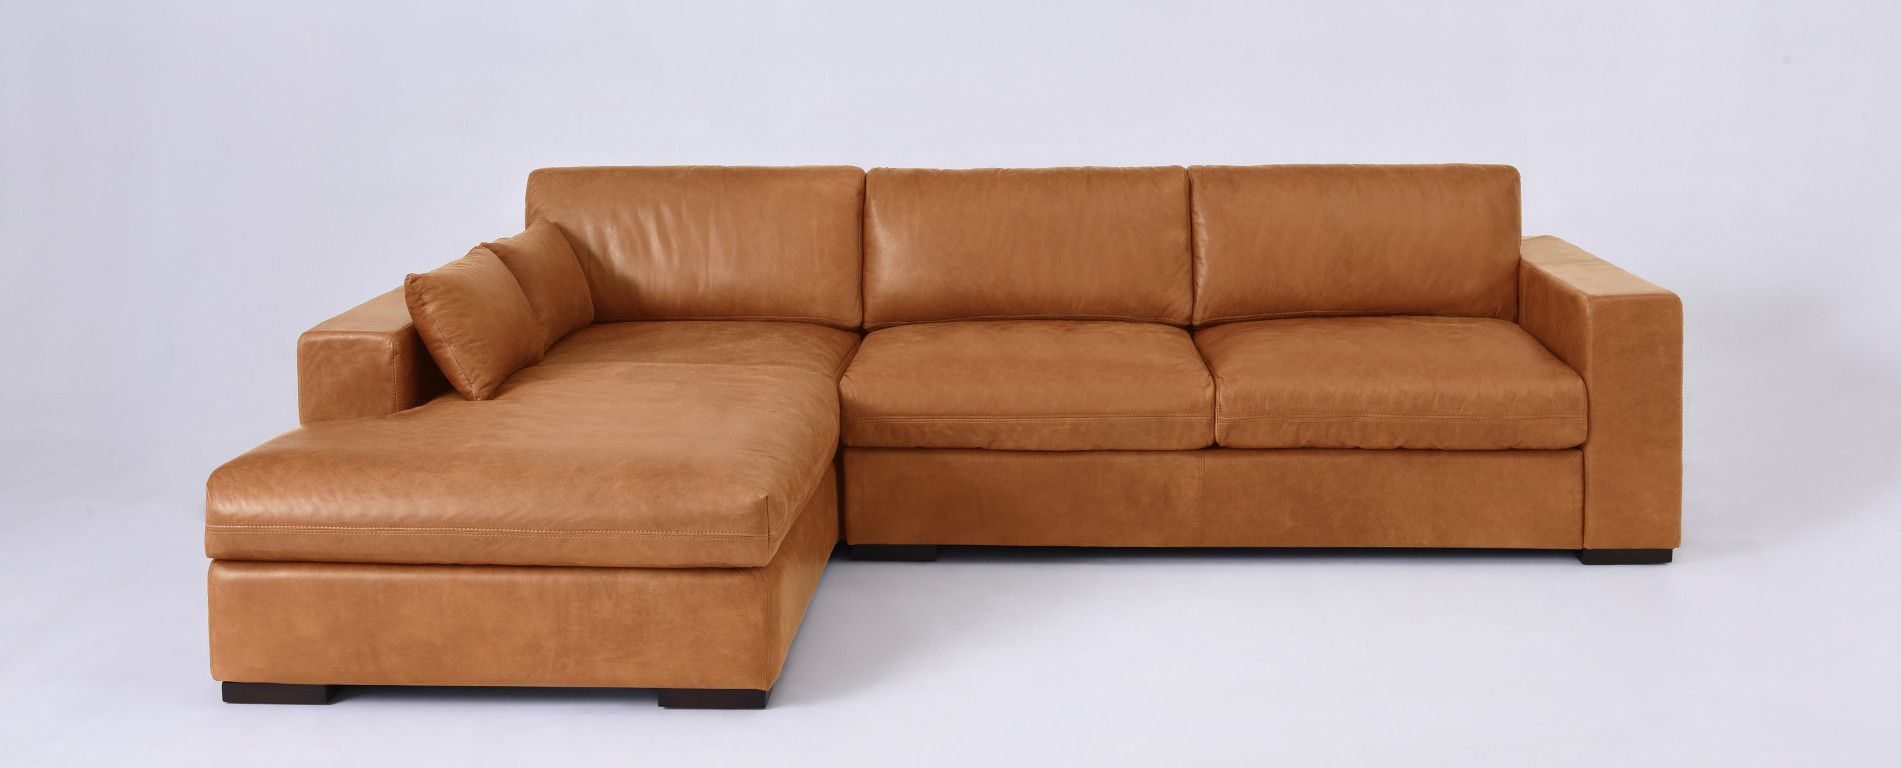 long sofas leather envelop sectional sofa aberdeen left facing arm chaise sectionals living furniture